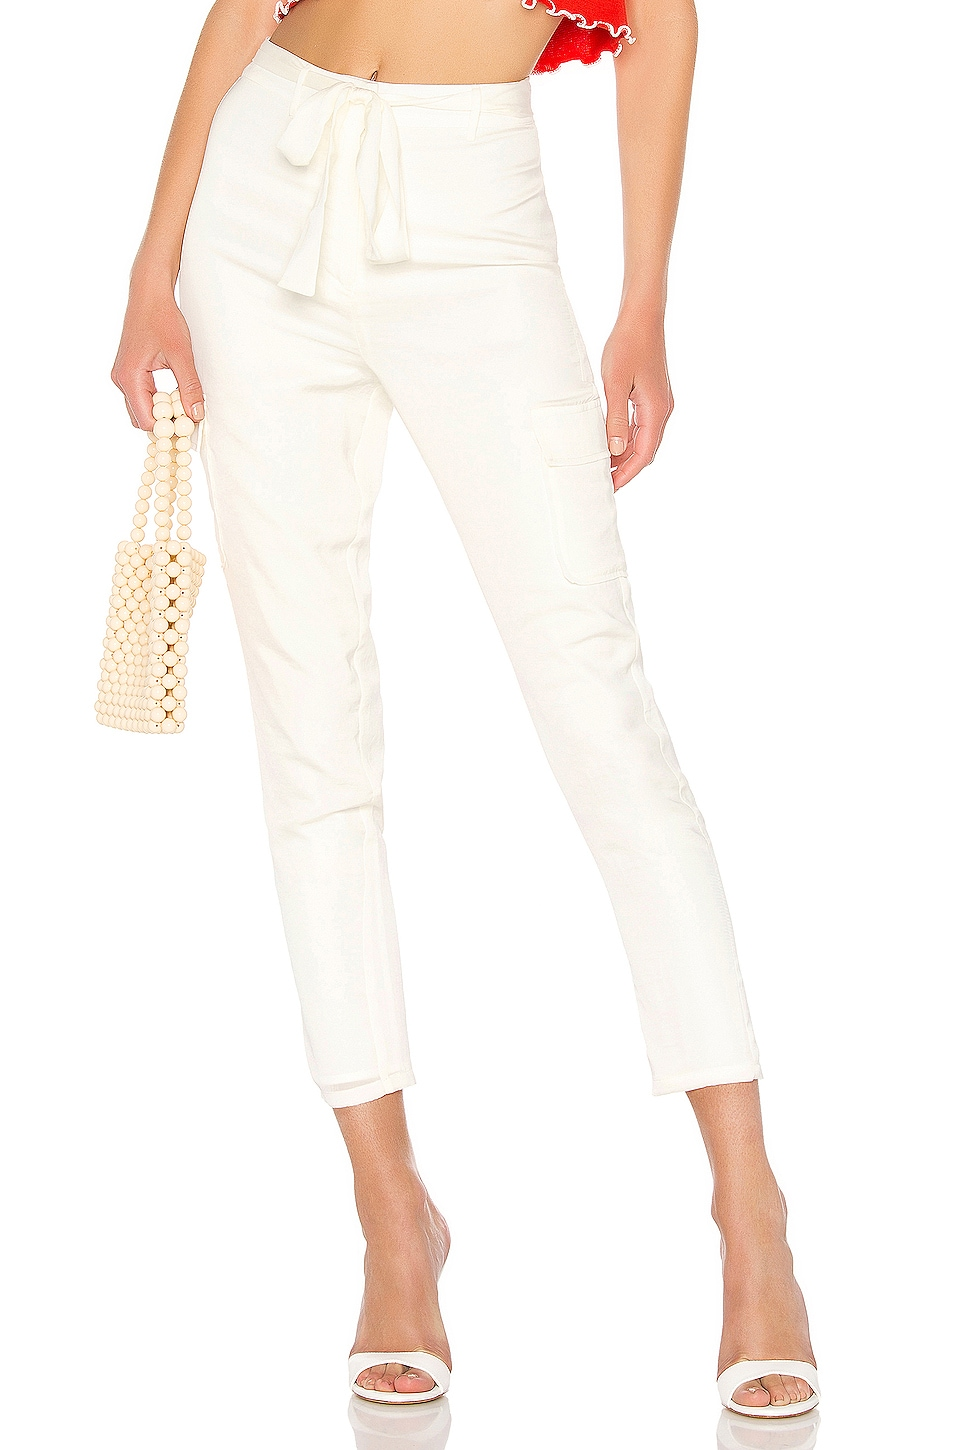 Lovers + Friends Clarissa Pants in Ivory